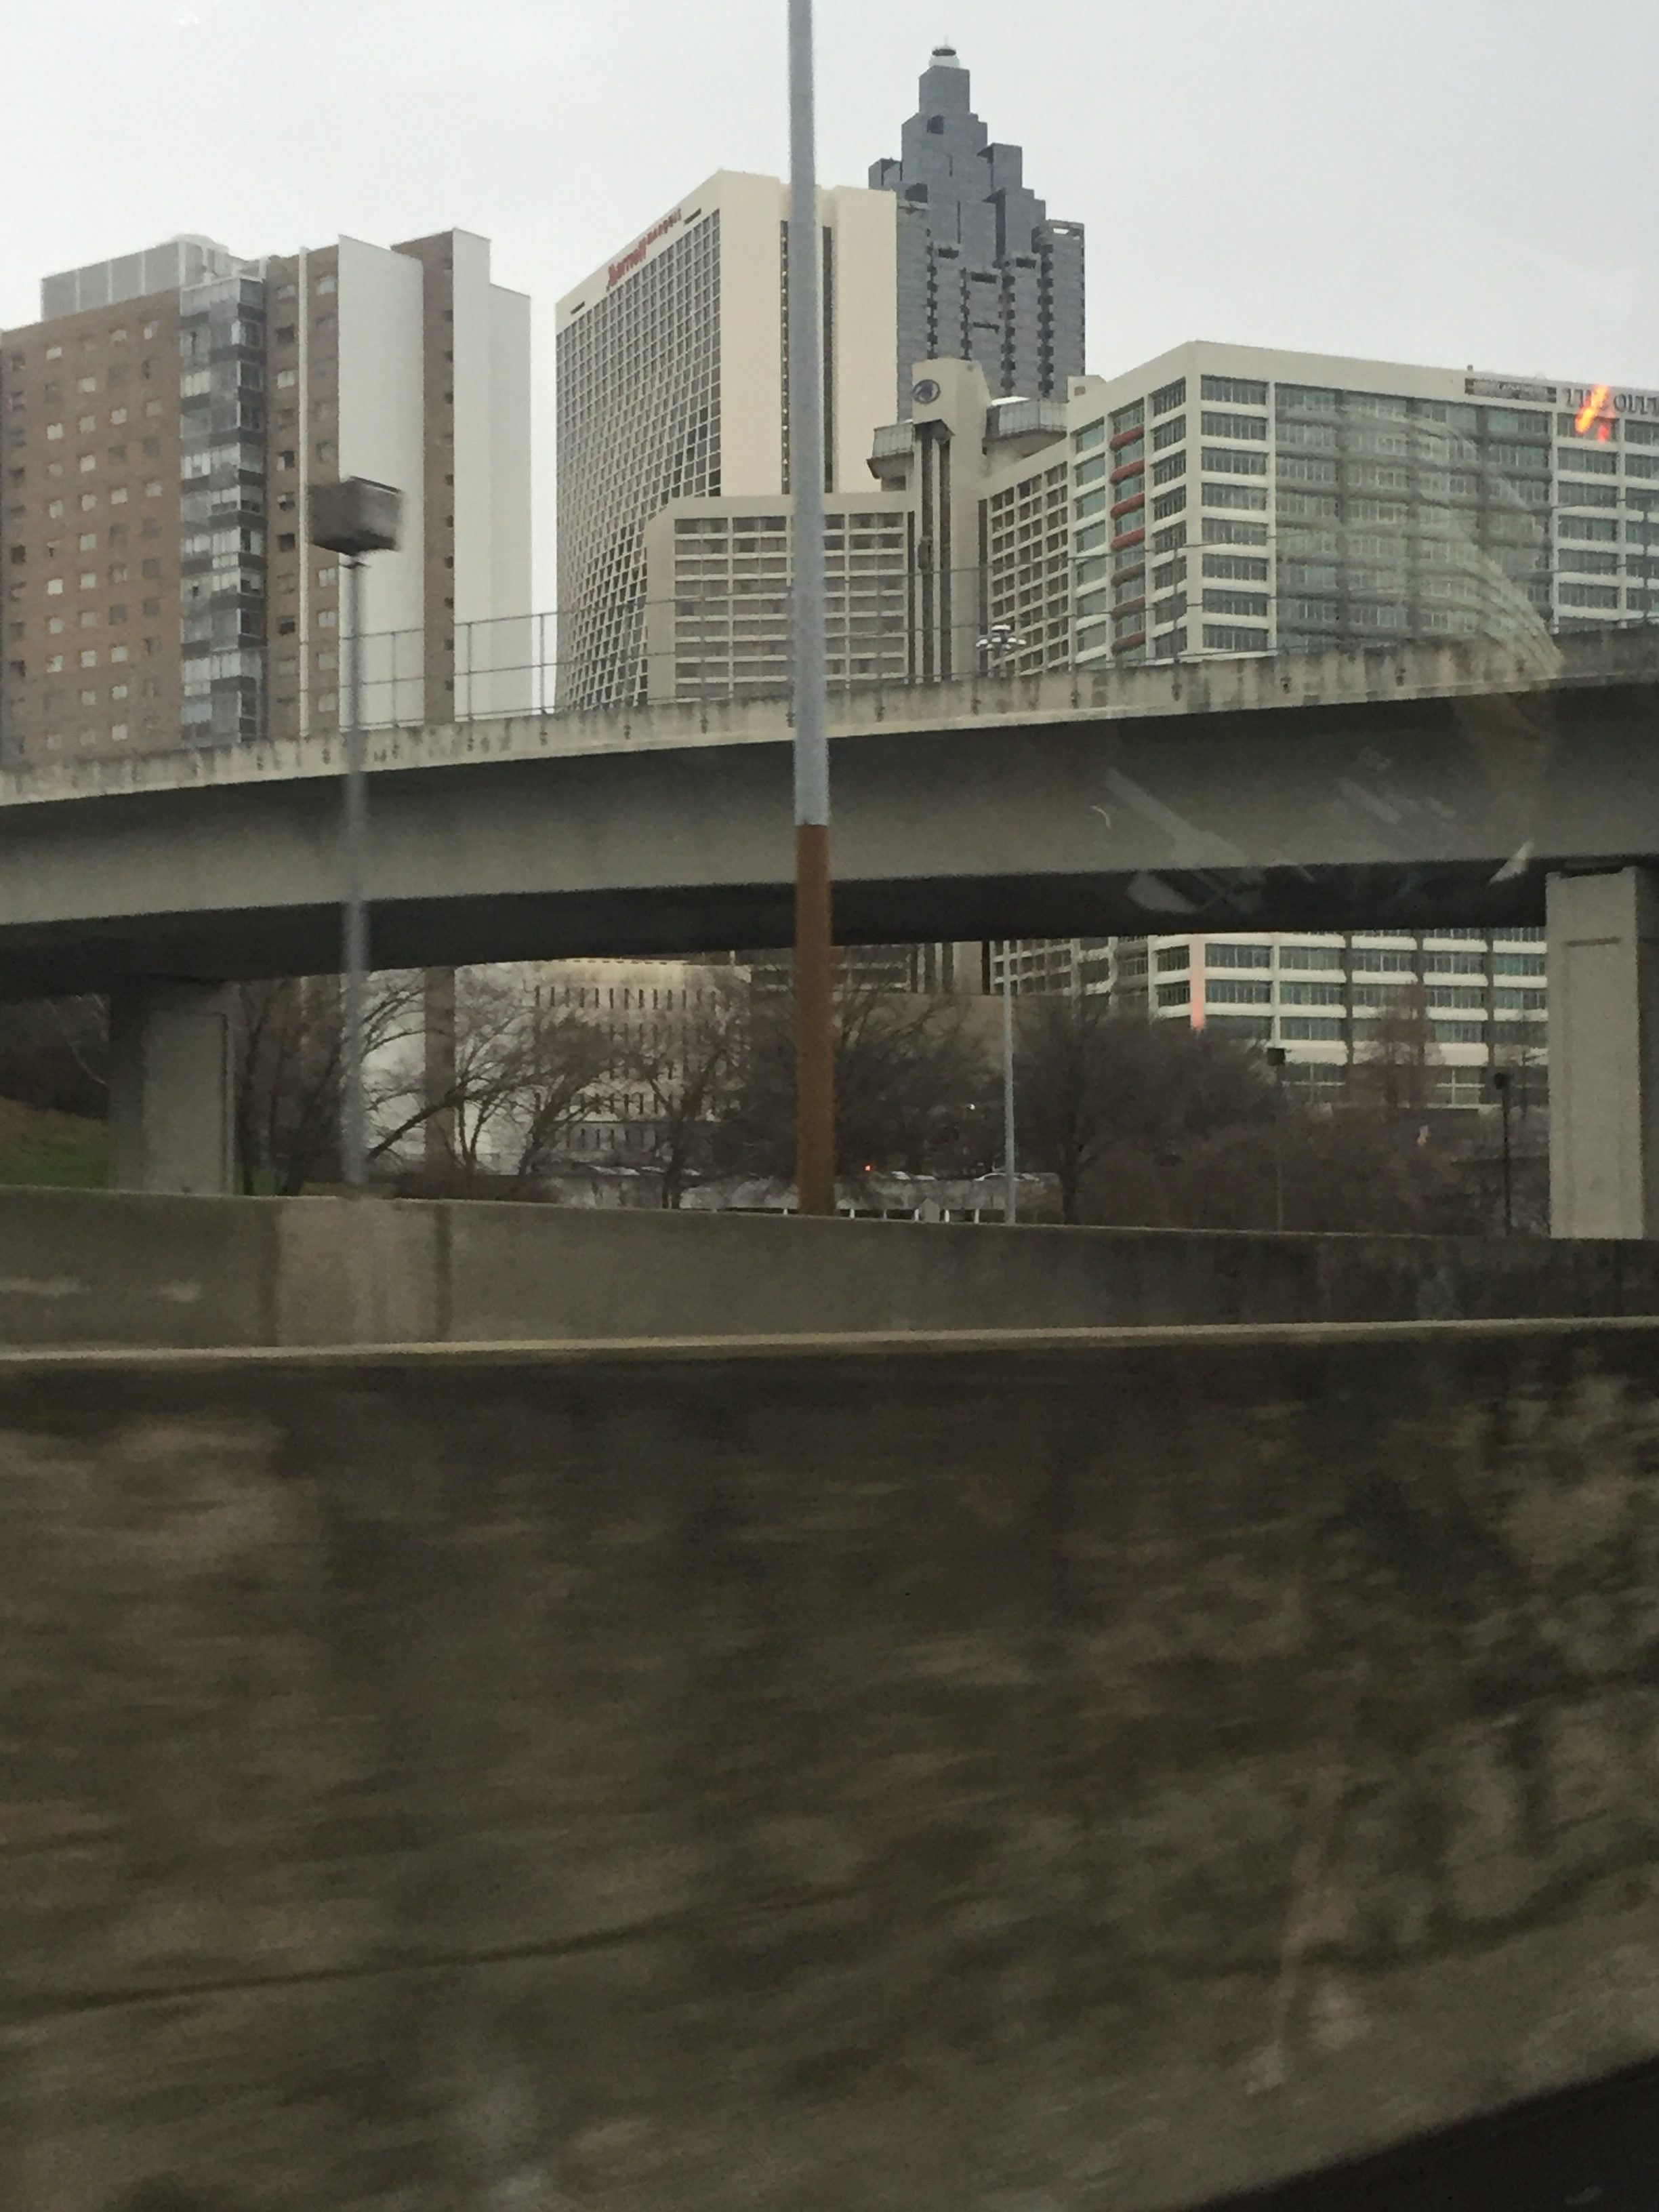 Some buildings from the city of Atlanta.